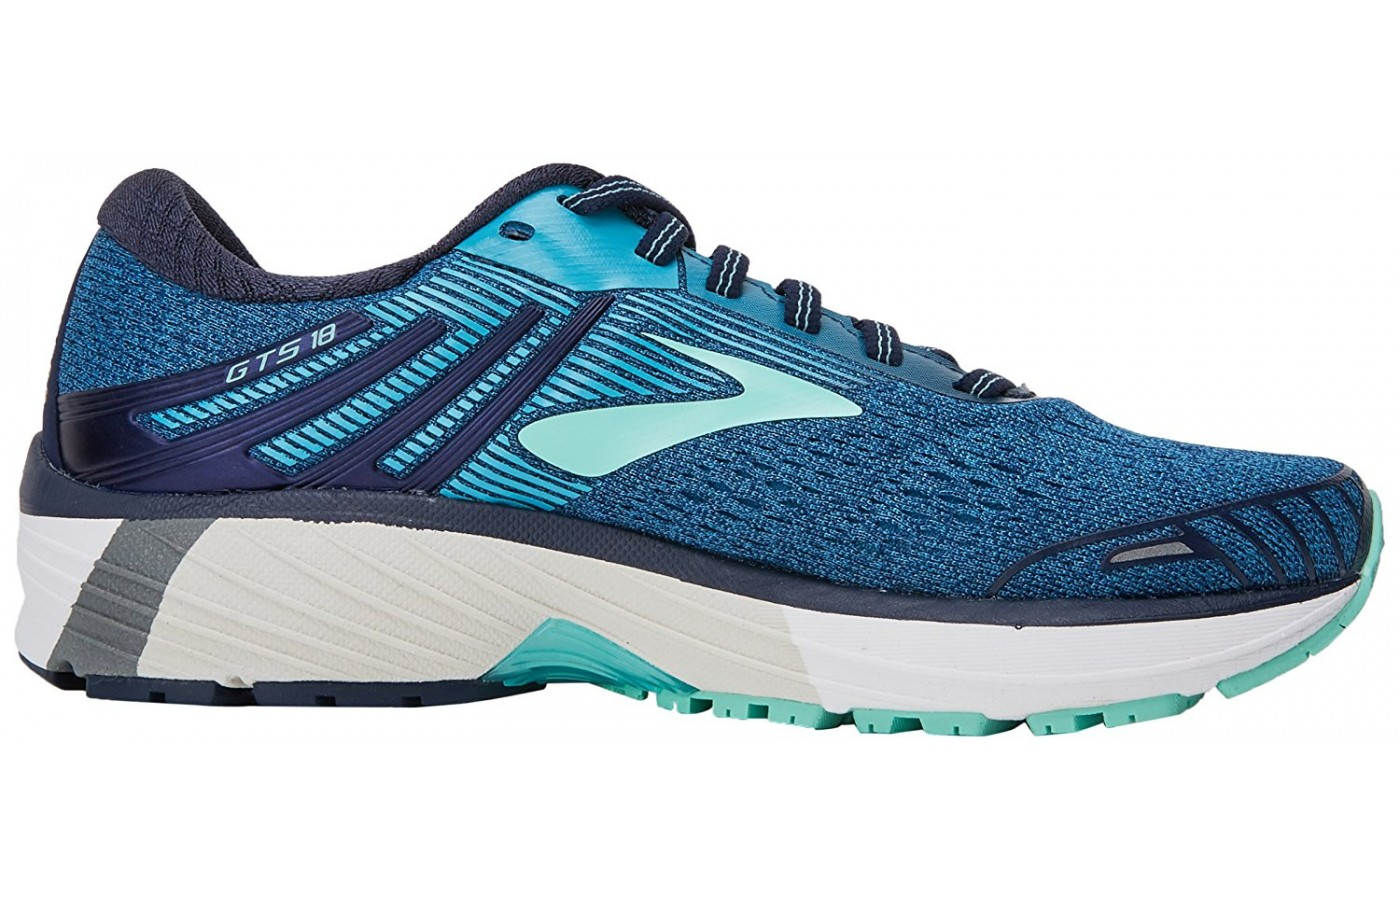 The Brooks Adrenaline GTS 18 is durable